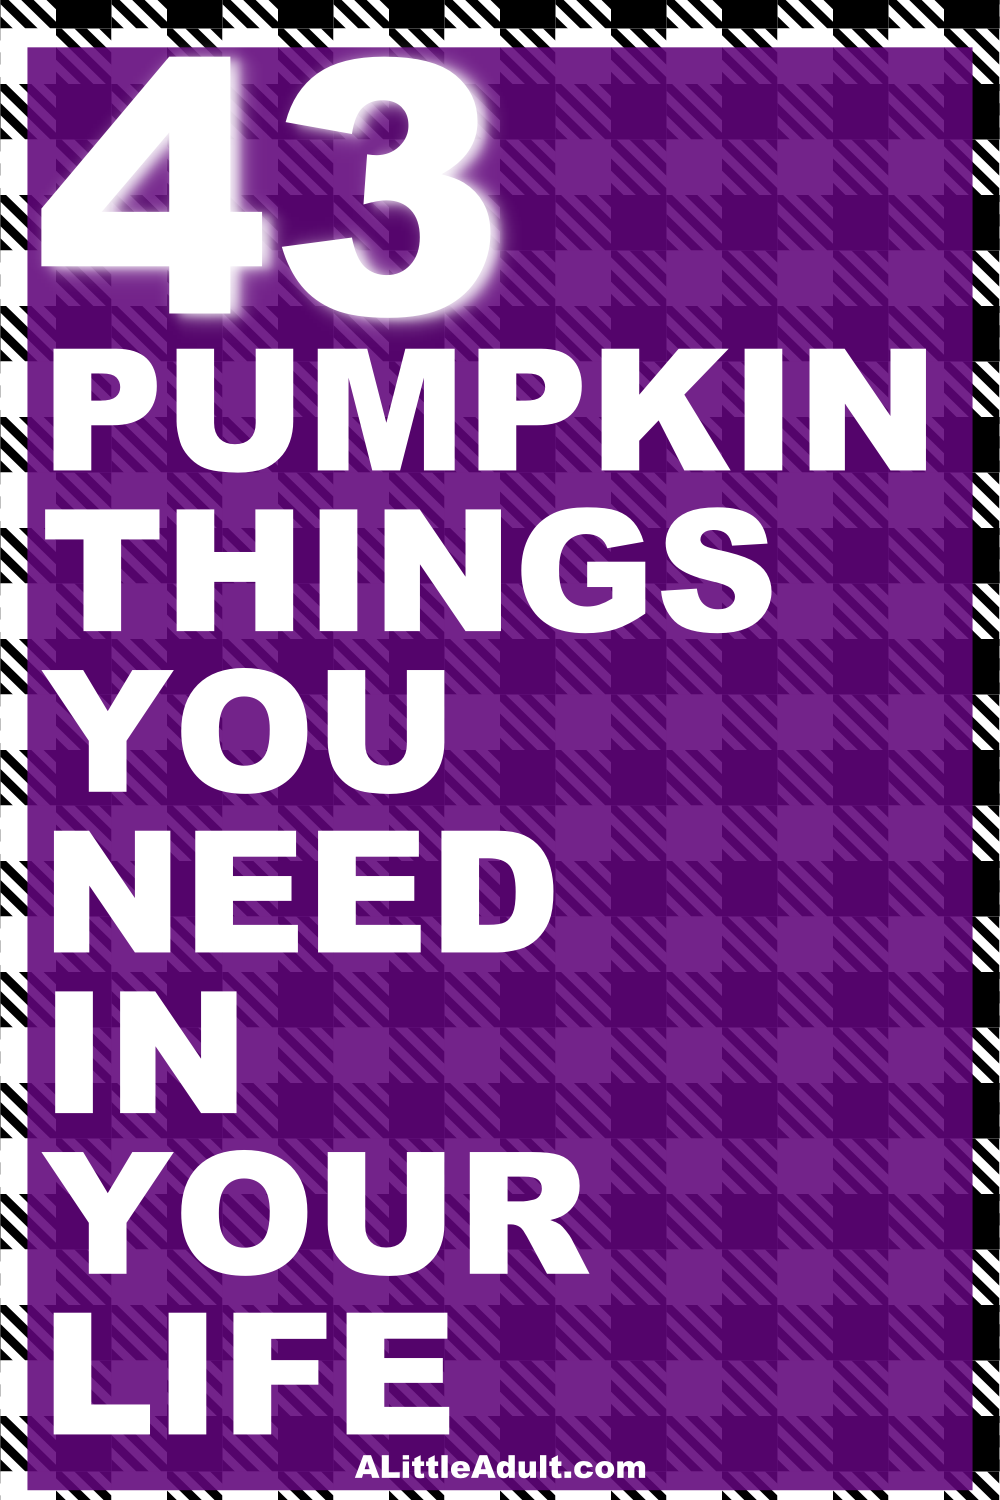 43 pumpkin things you need in your life